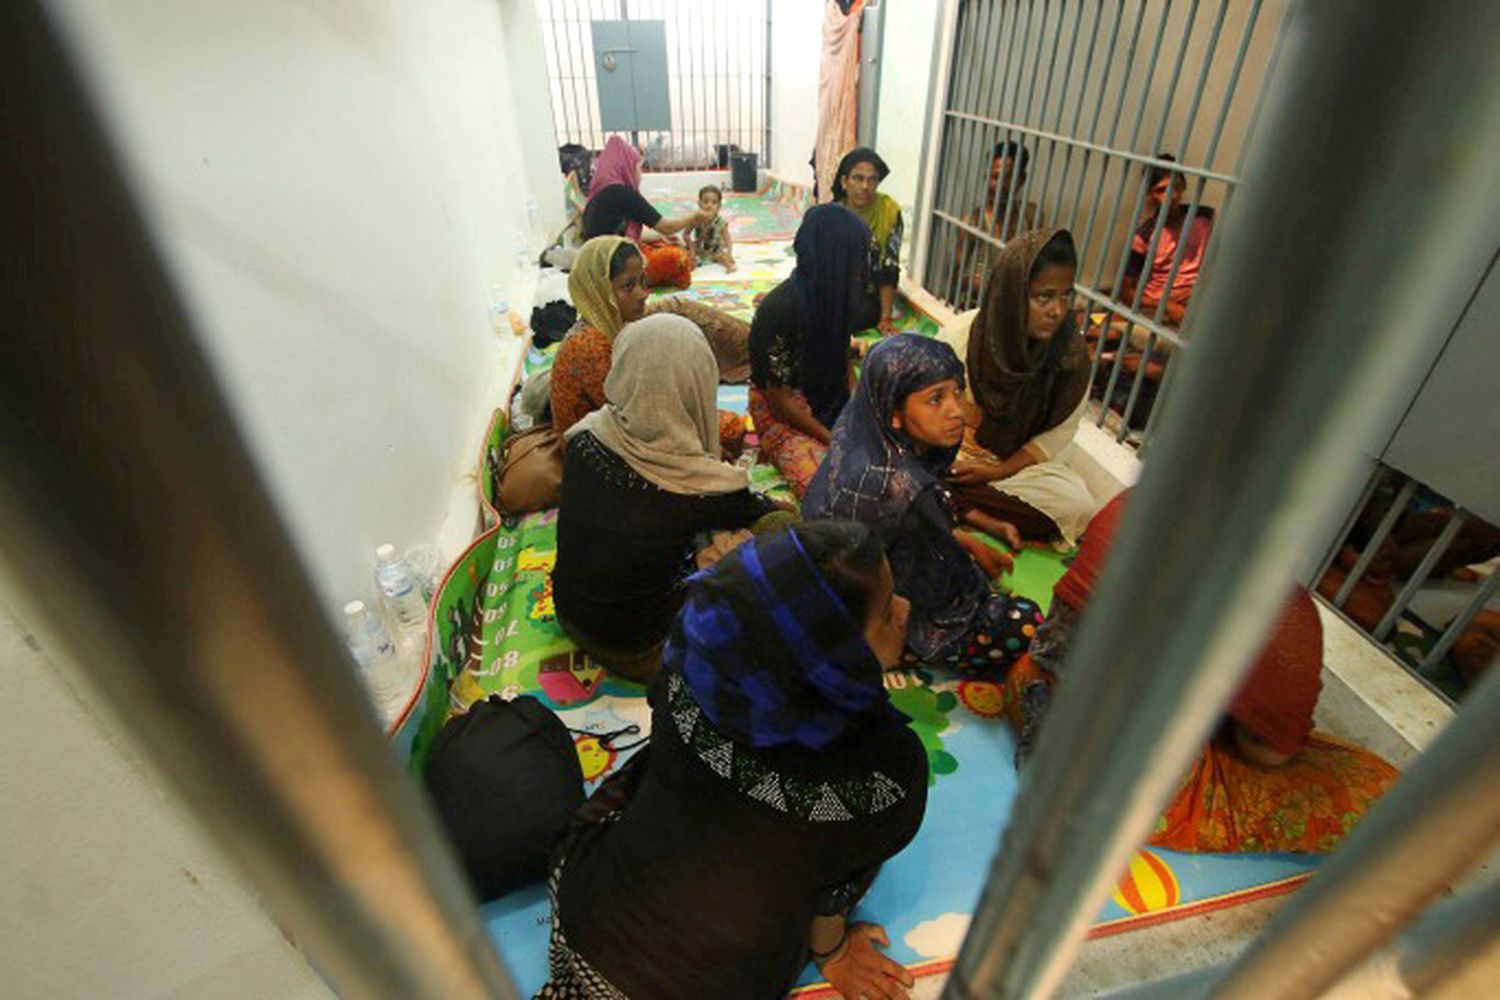 Rohingya people are seen detained in a police station after a fishing boat carrying more than sixty Rohingya refugees was found beached at Rawi island, part of Tarutao national park in Satun province on Wednesday. (Reuters photo)